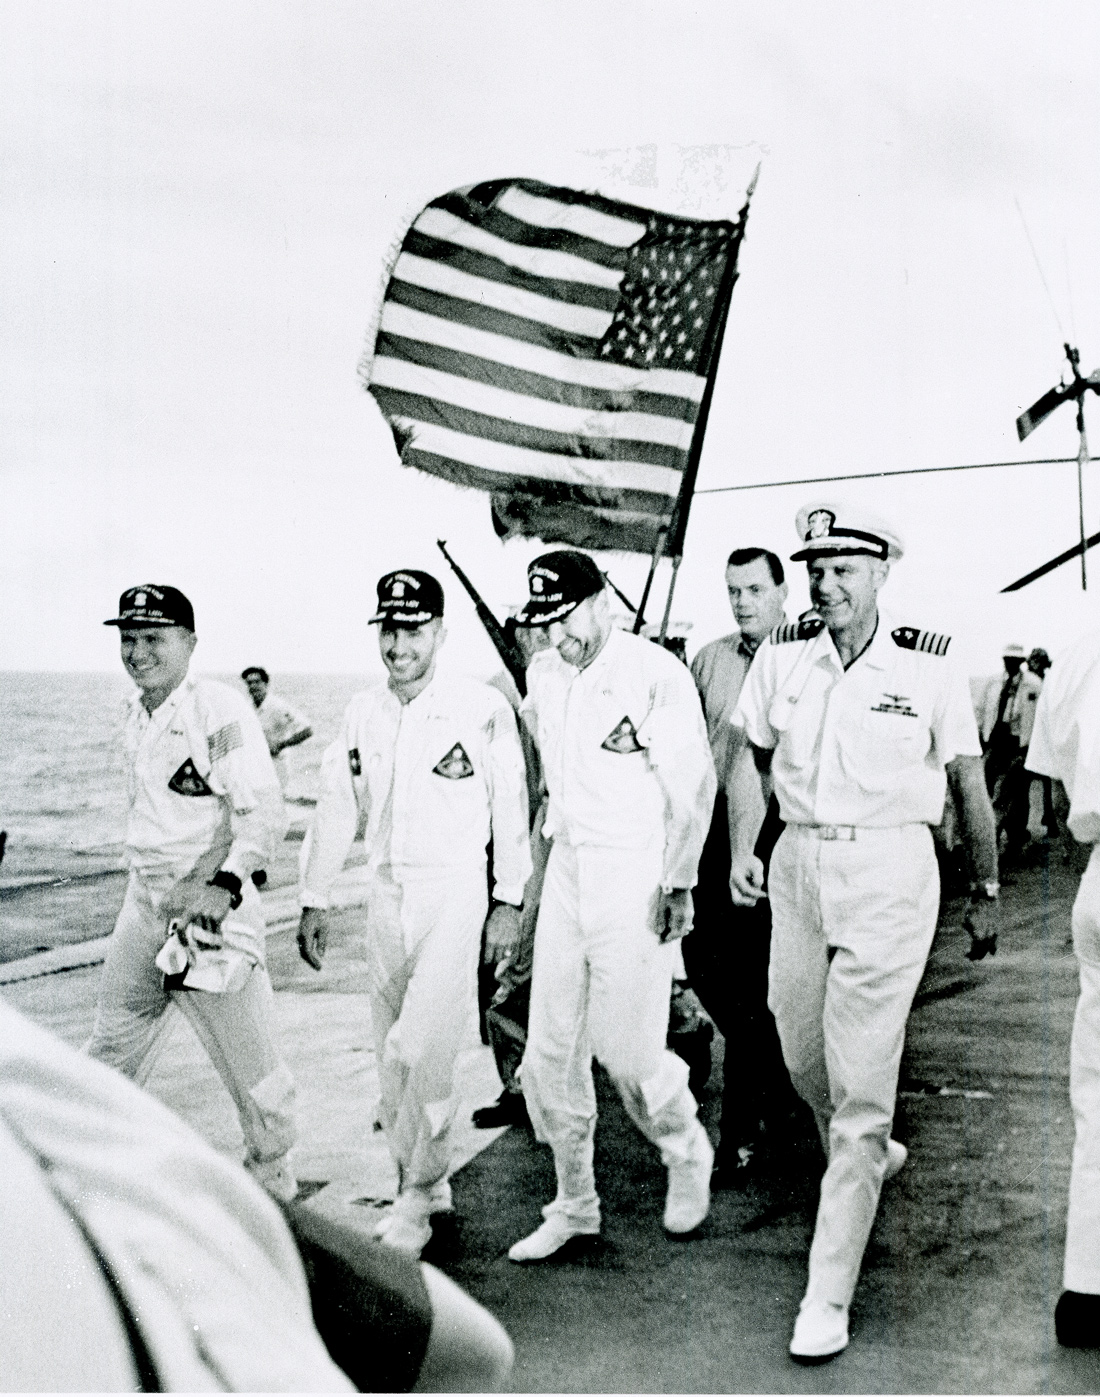 Group of men walking with American flag flying behind them